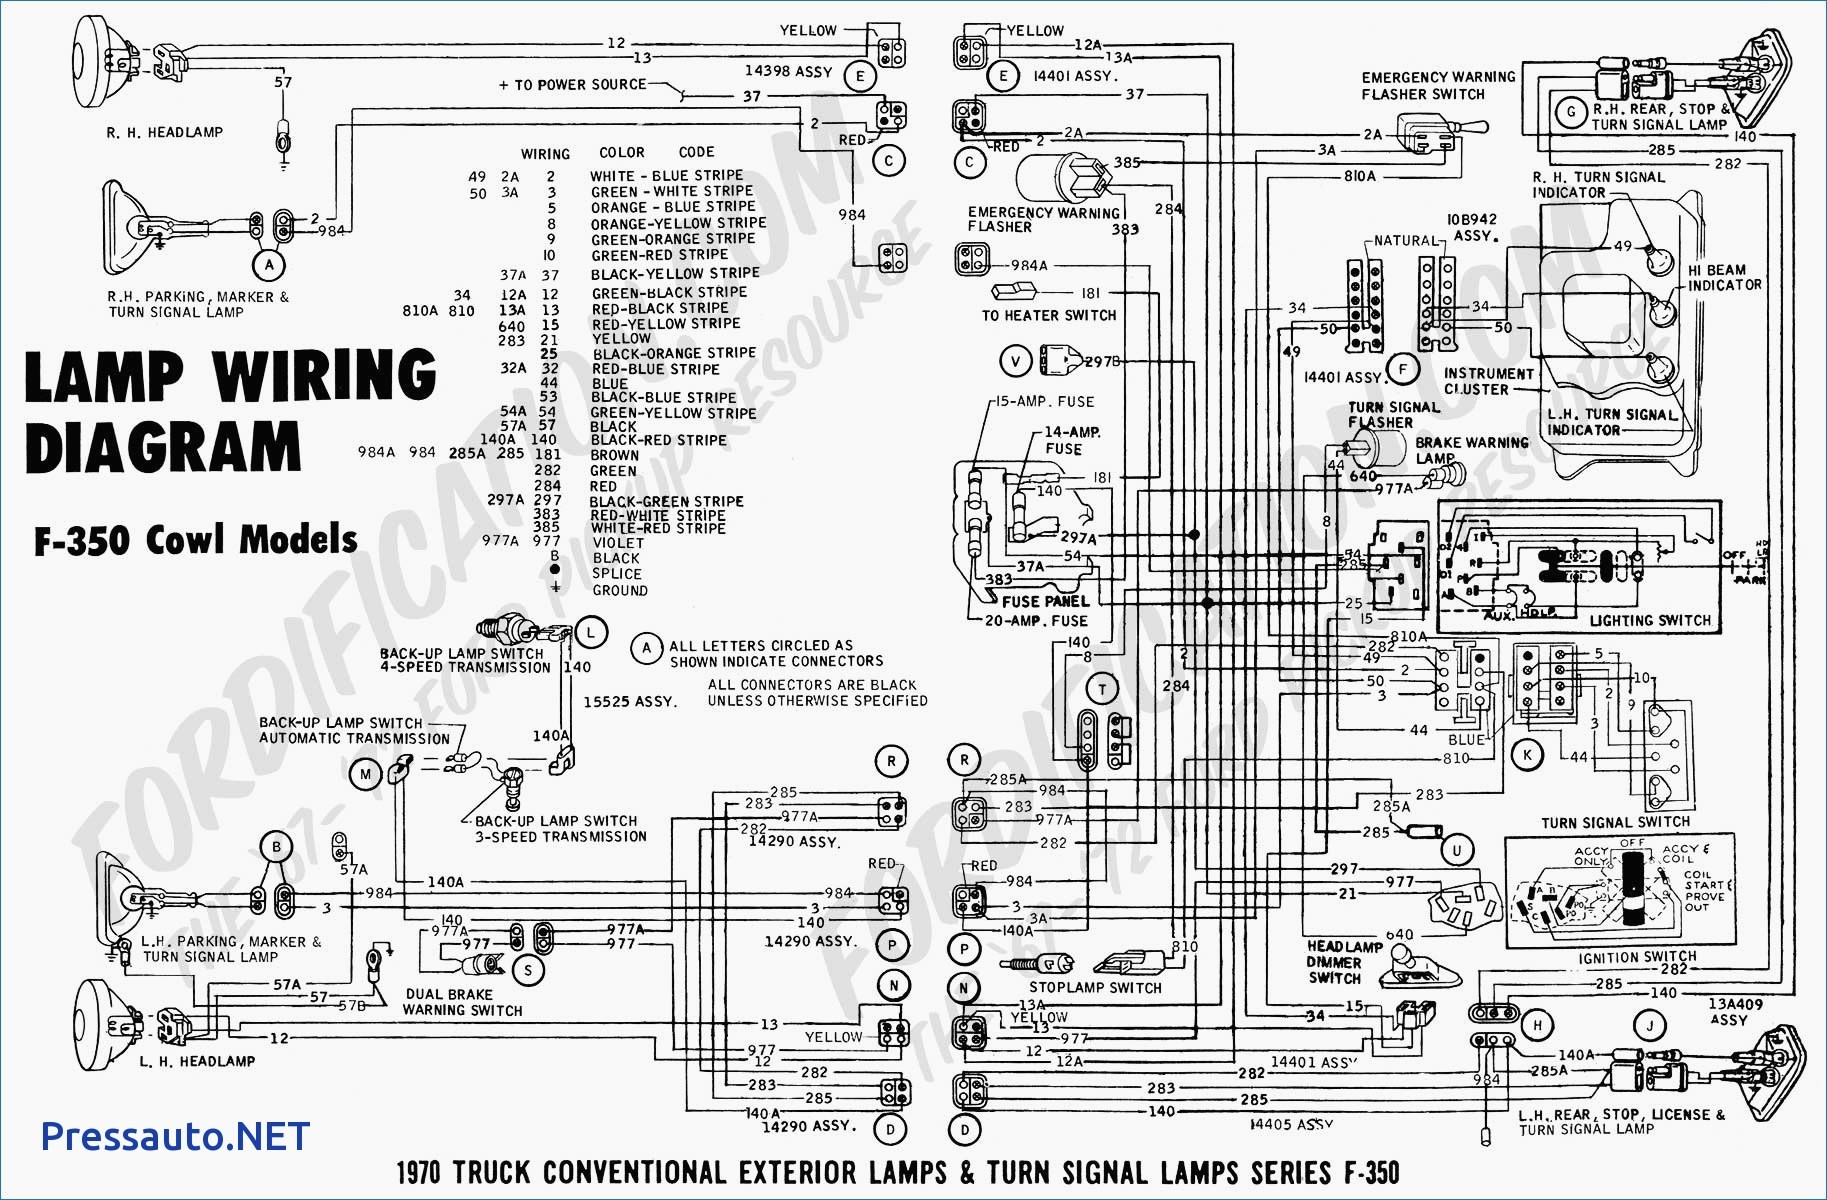 1987 Ford Ranger Engine Diagram Wiring Library 2003 1996 Of